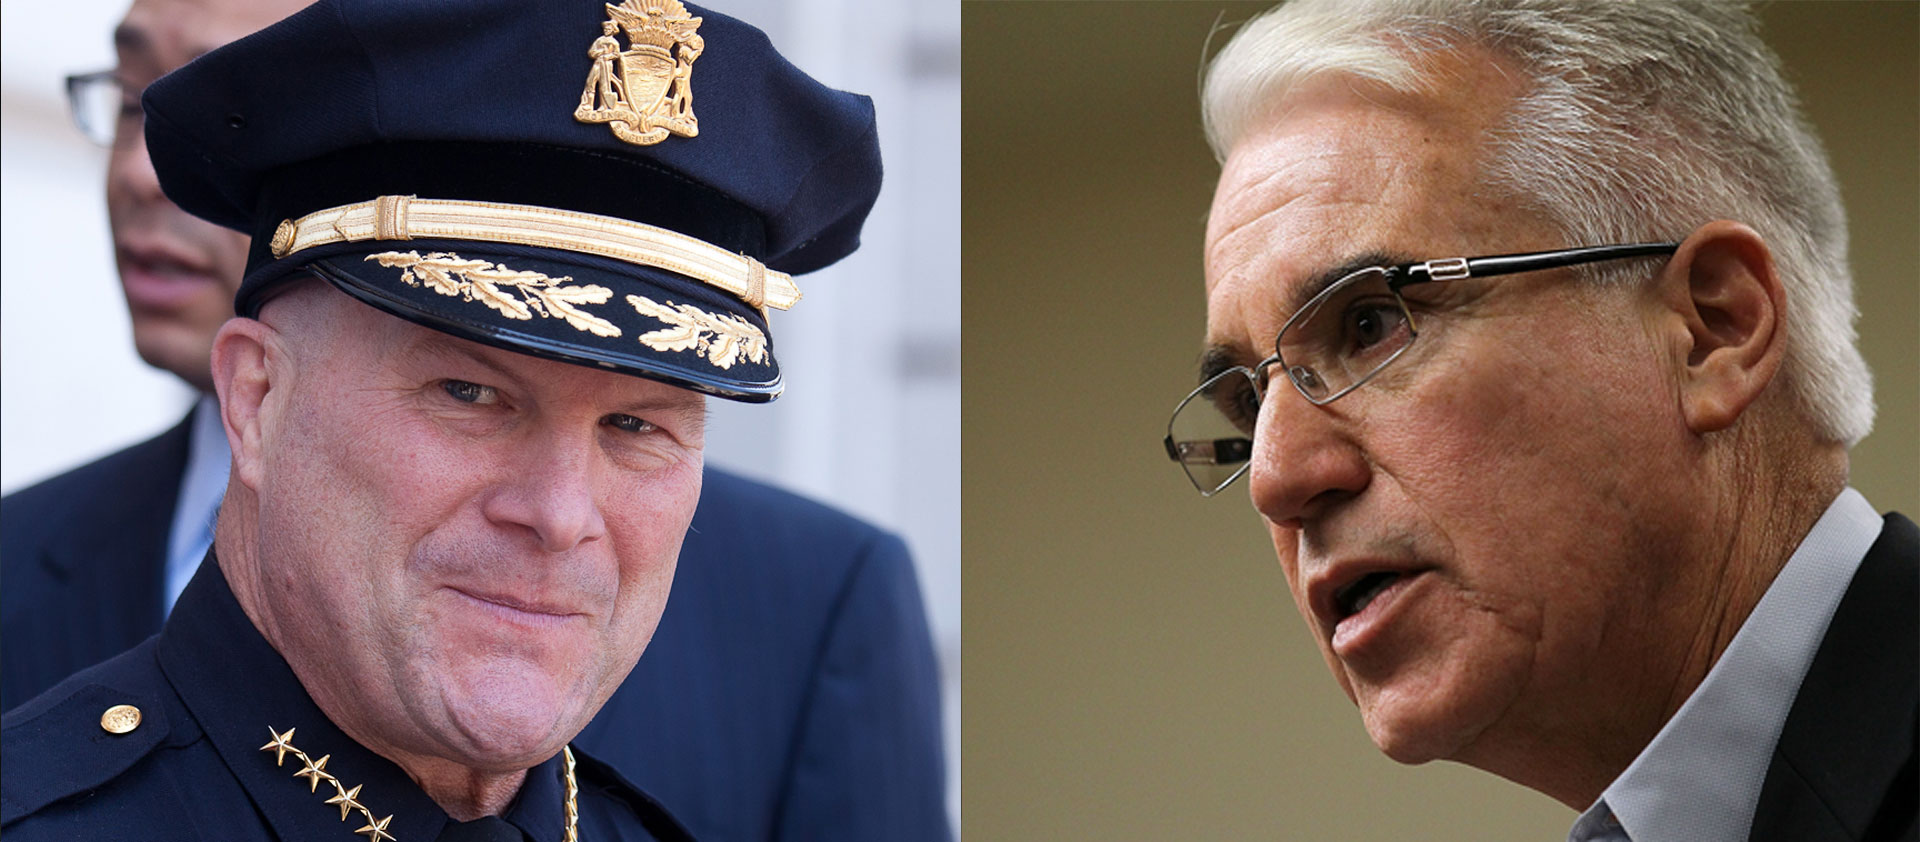 San Francisco Police Chief Greg Suhr and District Attorney George Gascón are trading letters over who knew what and when about a recently discovered batch of racist and homophobic text messages exchanged between SFPD officers.